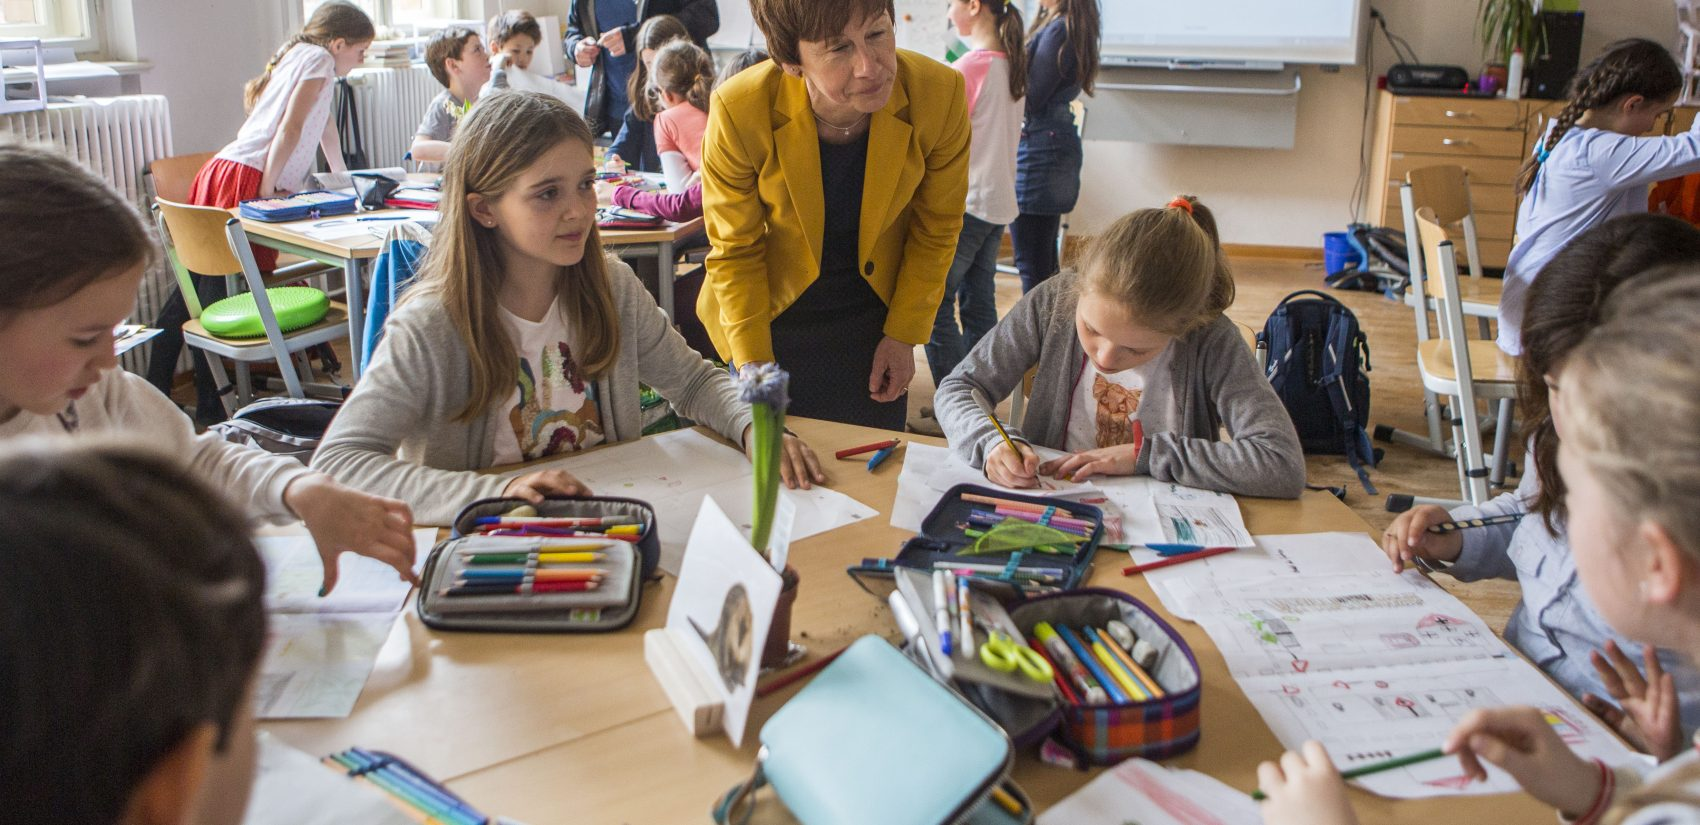 Angela Thiele (center), principal of Koppenplatz elementary, visits students in class in Berlin's wealthier side of Mitte. (Jessica Kourkounis/For Keystone Crossroads)